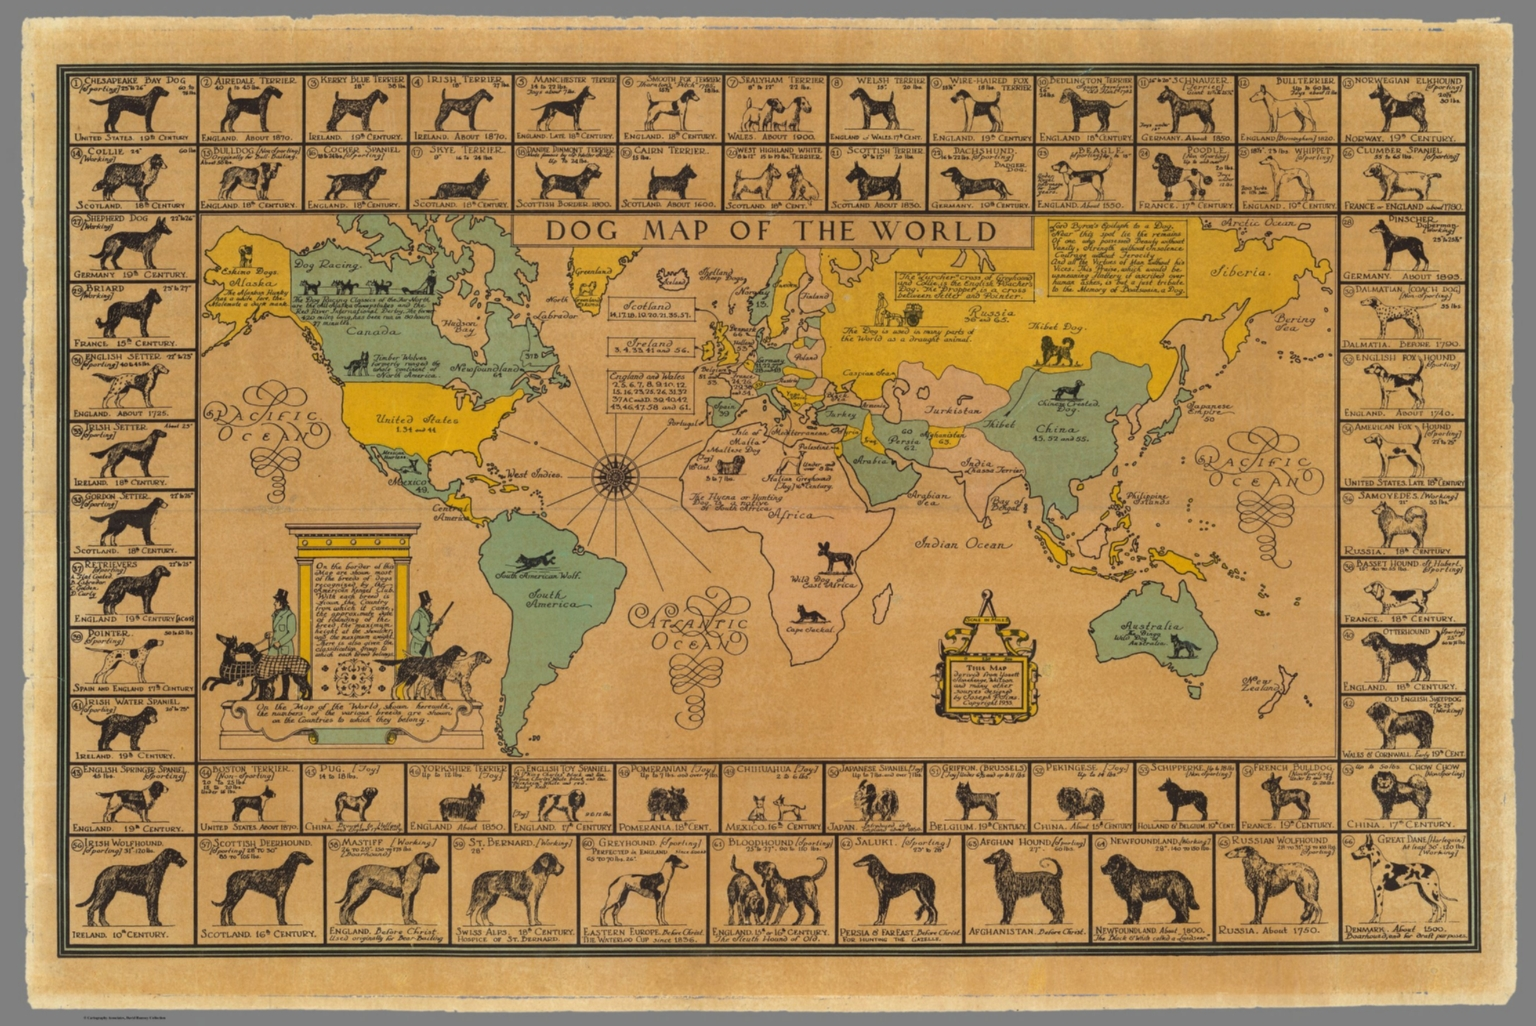 Dog map of the world david rumsey historical map collection dog map of the world gumiabroncs Image collections